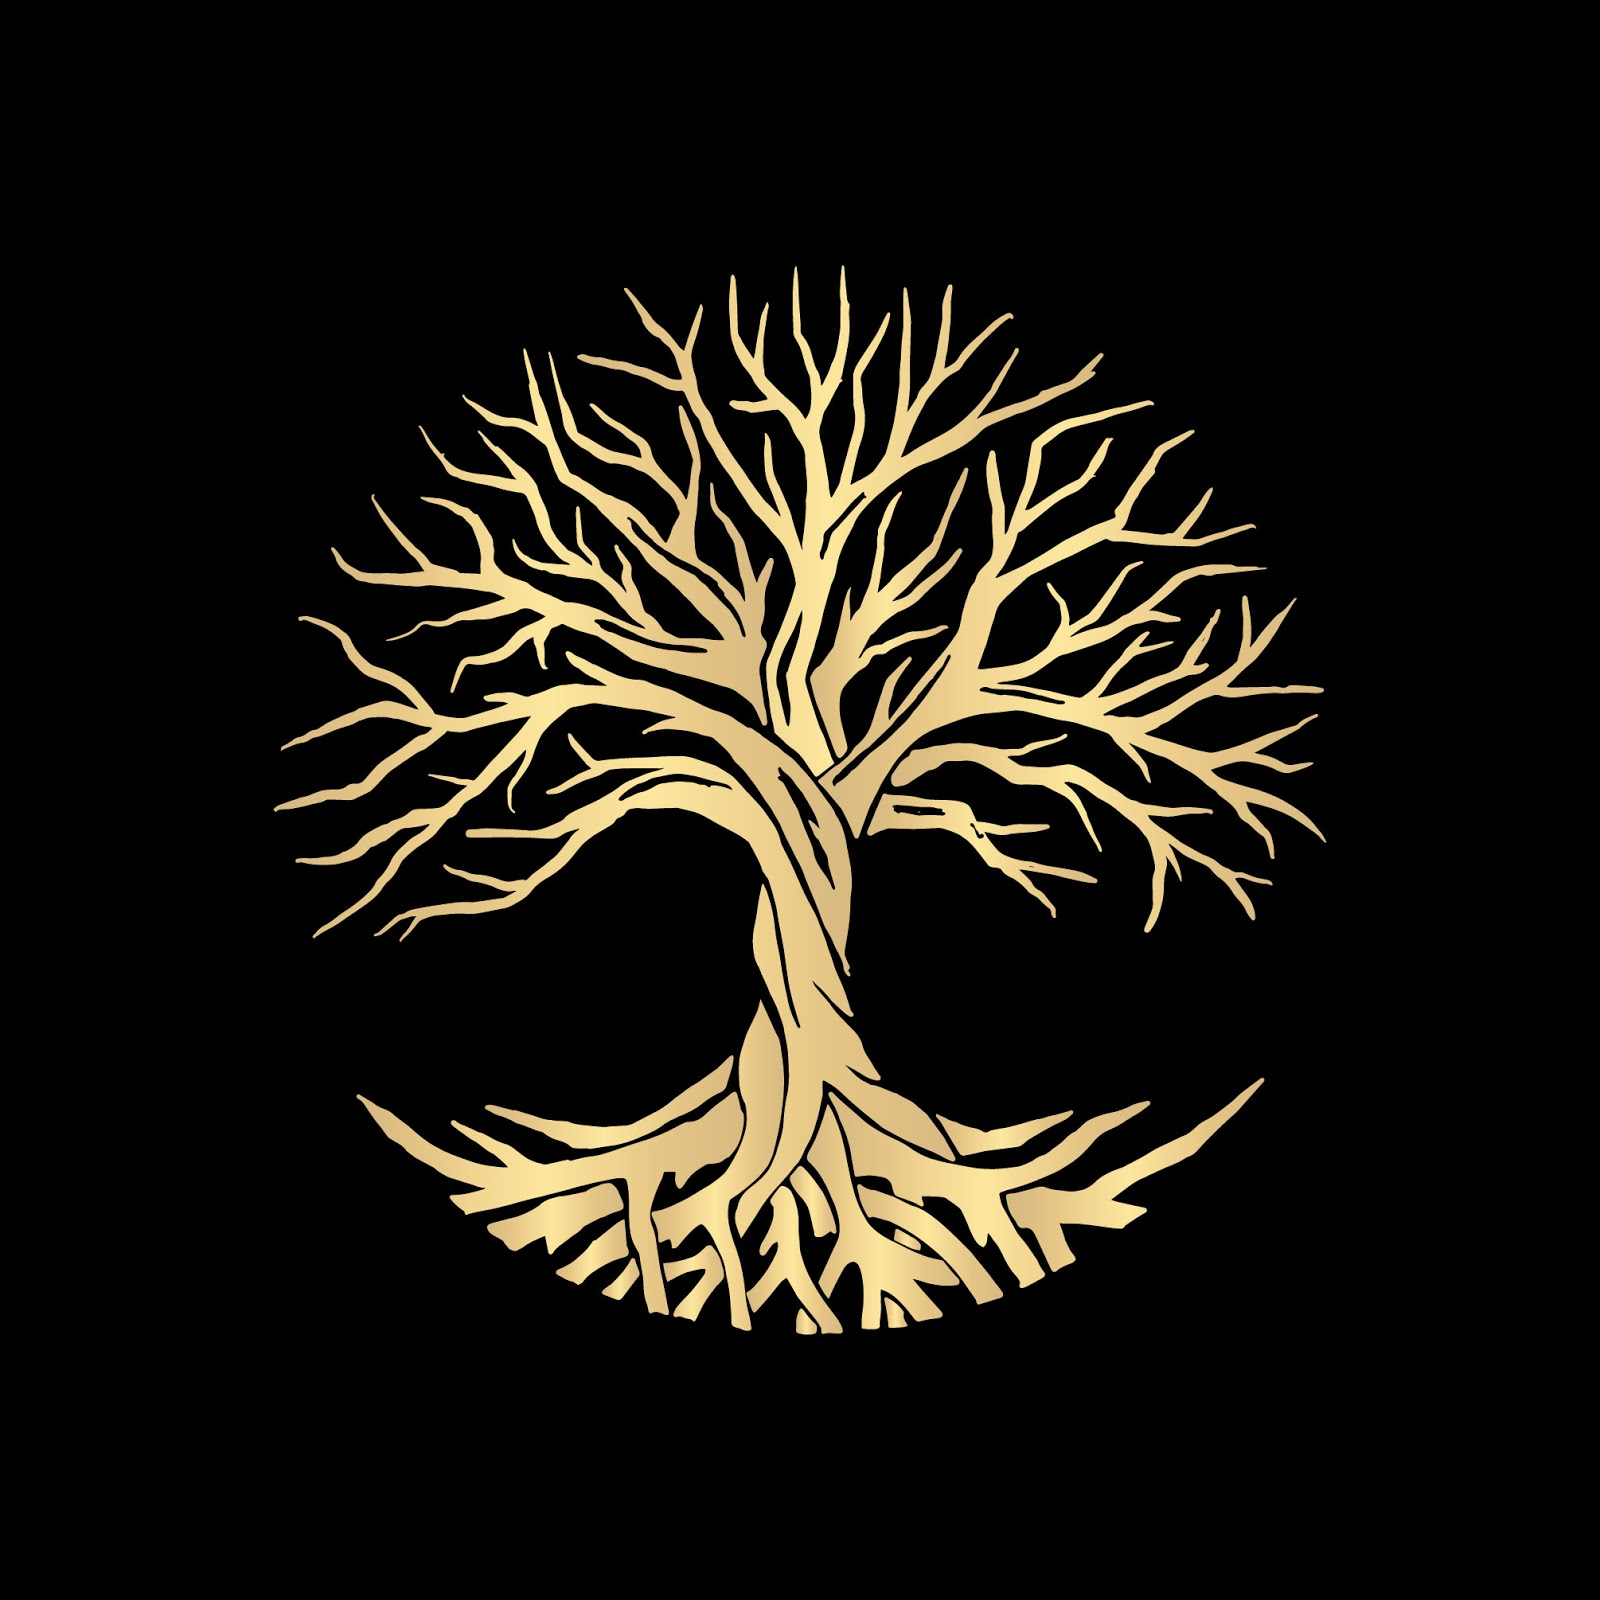 Root Tree Tree Life Vector Symbol Free Download Vector CDR, AI, EPS and PNG Formats